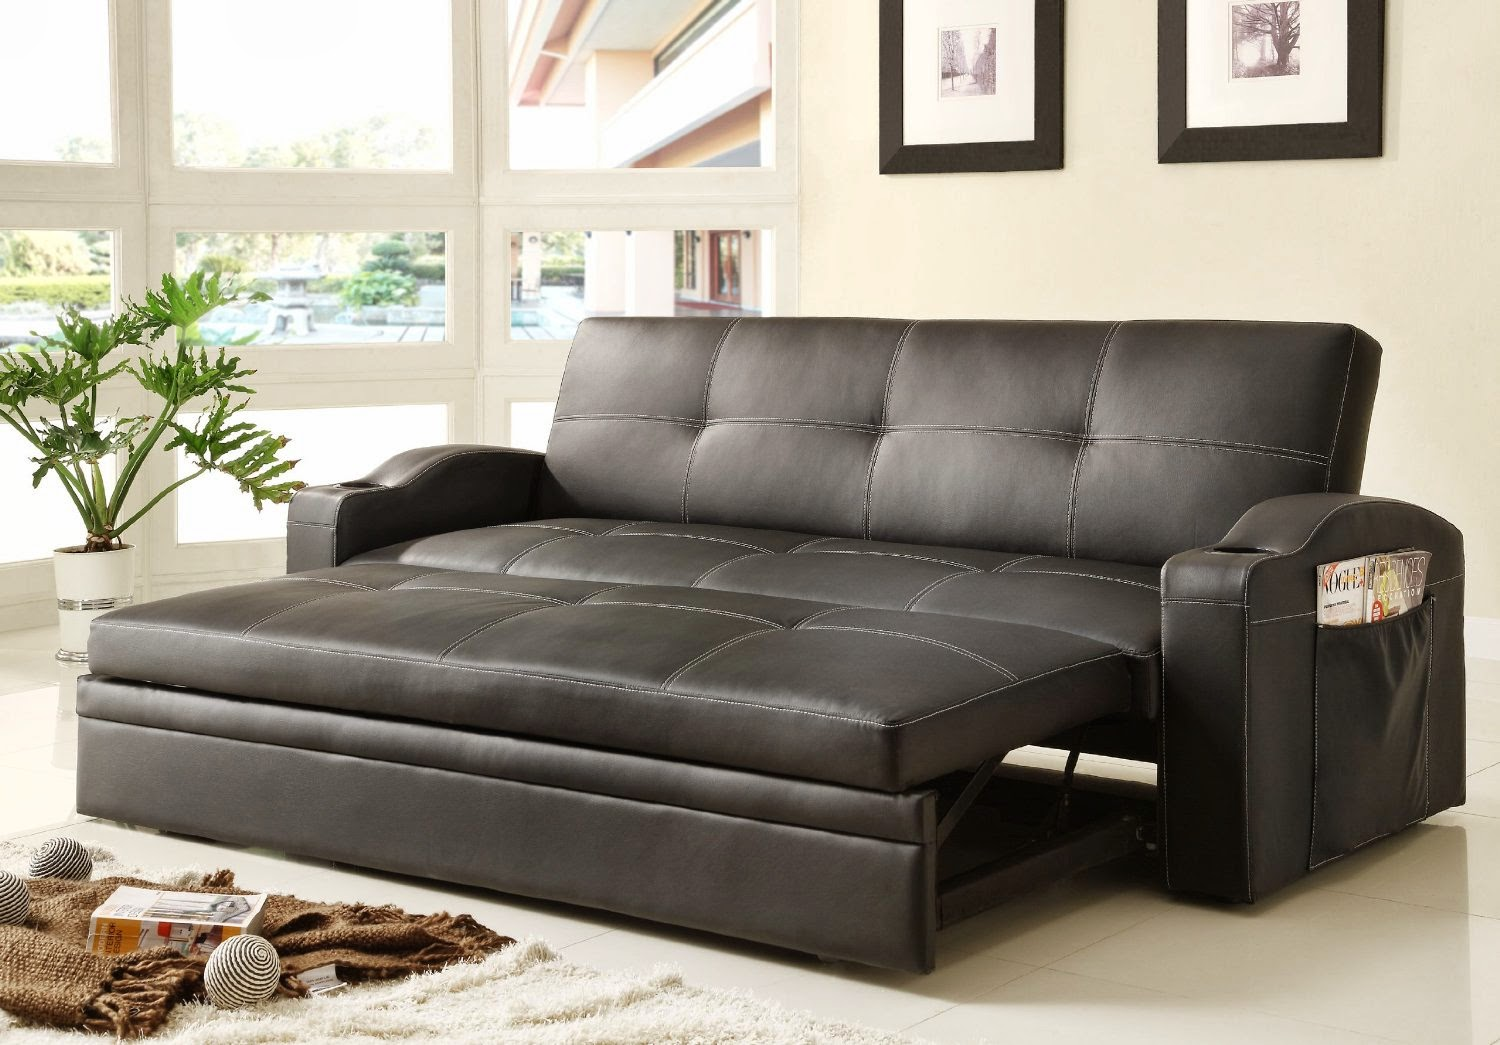 Best Homelegance 4803BLK Sofa Bed Review: Best Homelegance 4803BLK Convertible/Adjustable Sofa ...